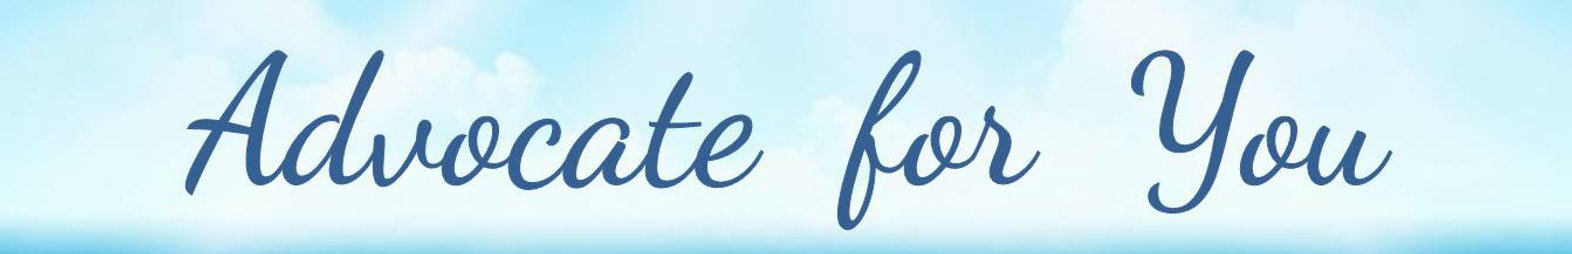 Advocate for YOU FB Banner.jpg